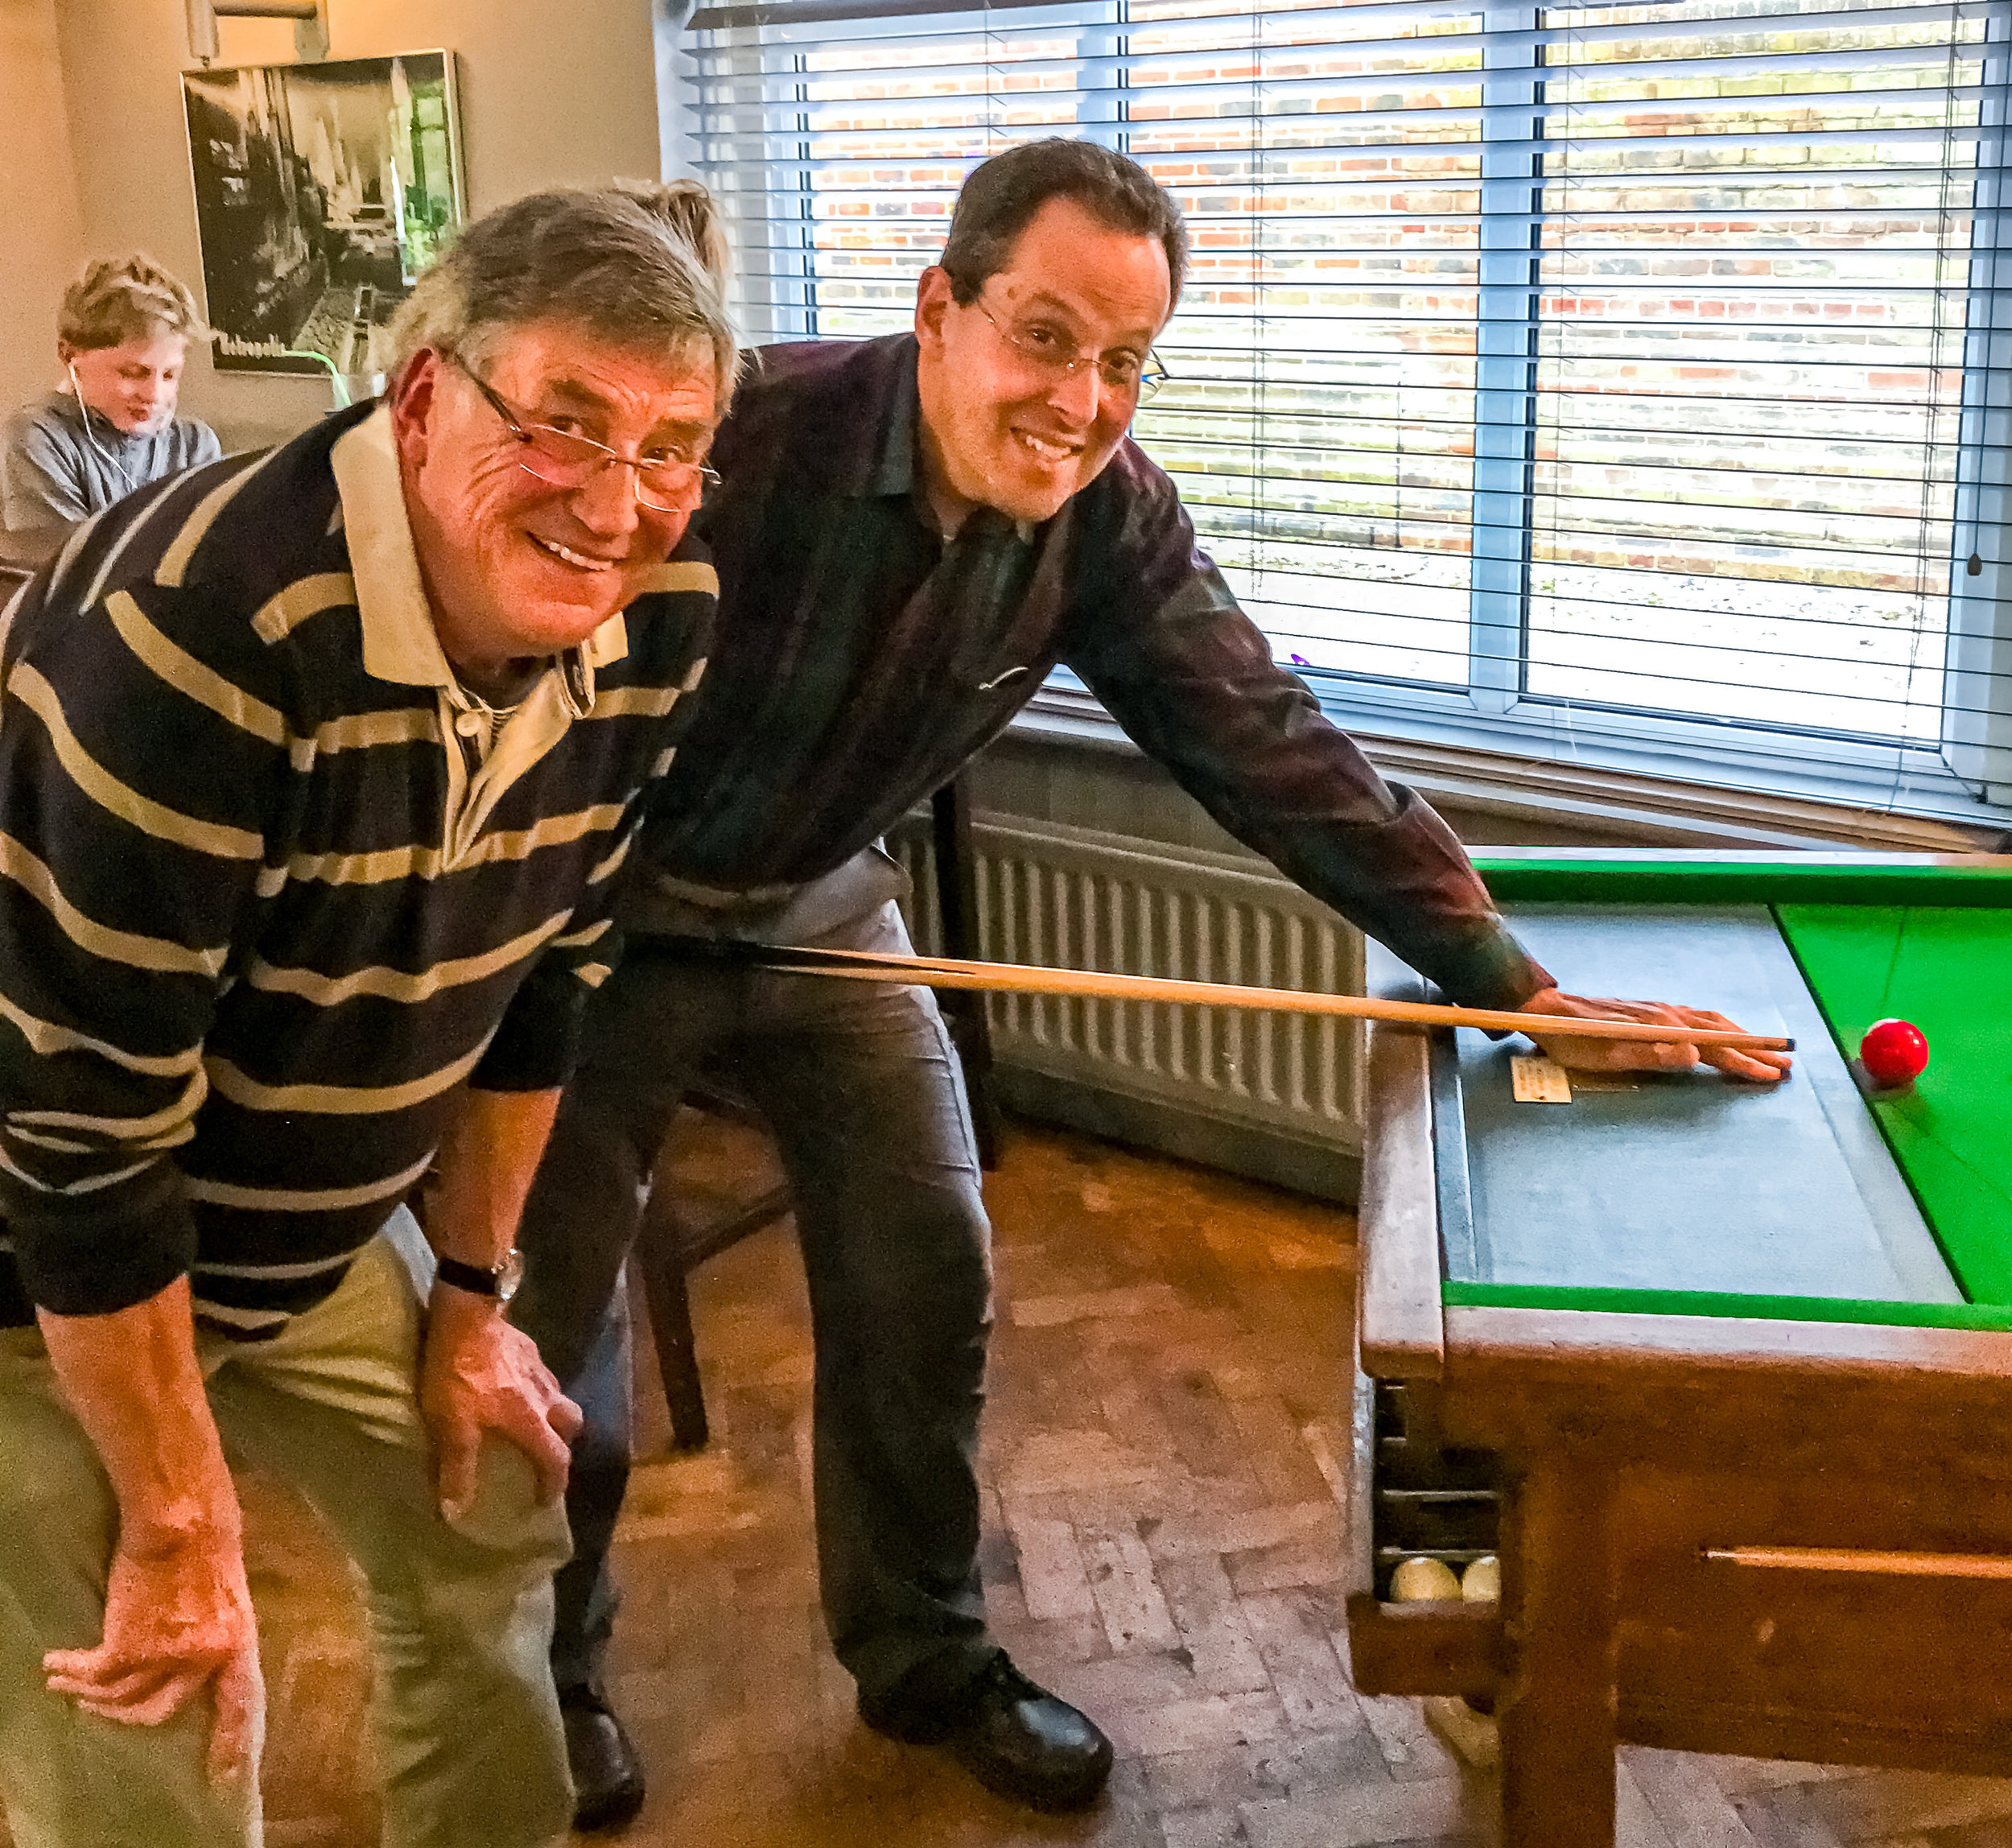 My mate Colin and me playing  Bar Billiards  after dinner at  The Seaview .